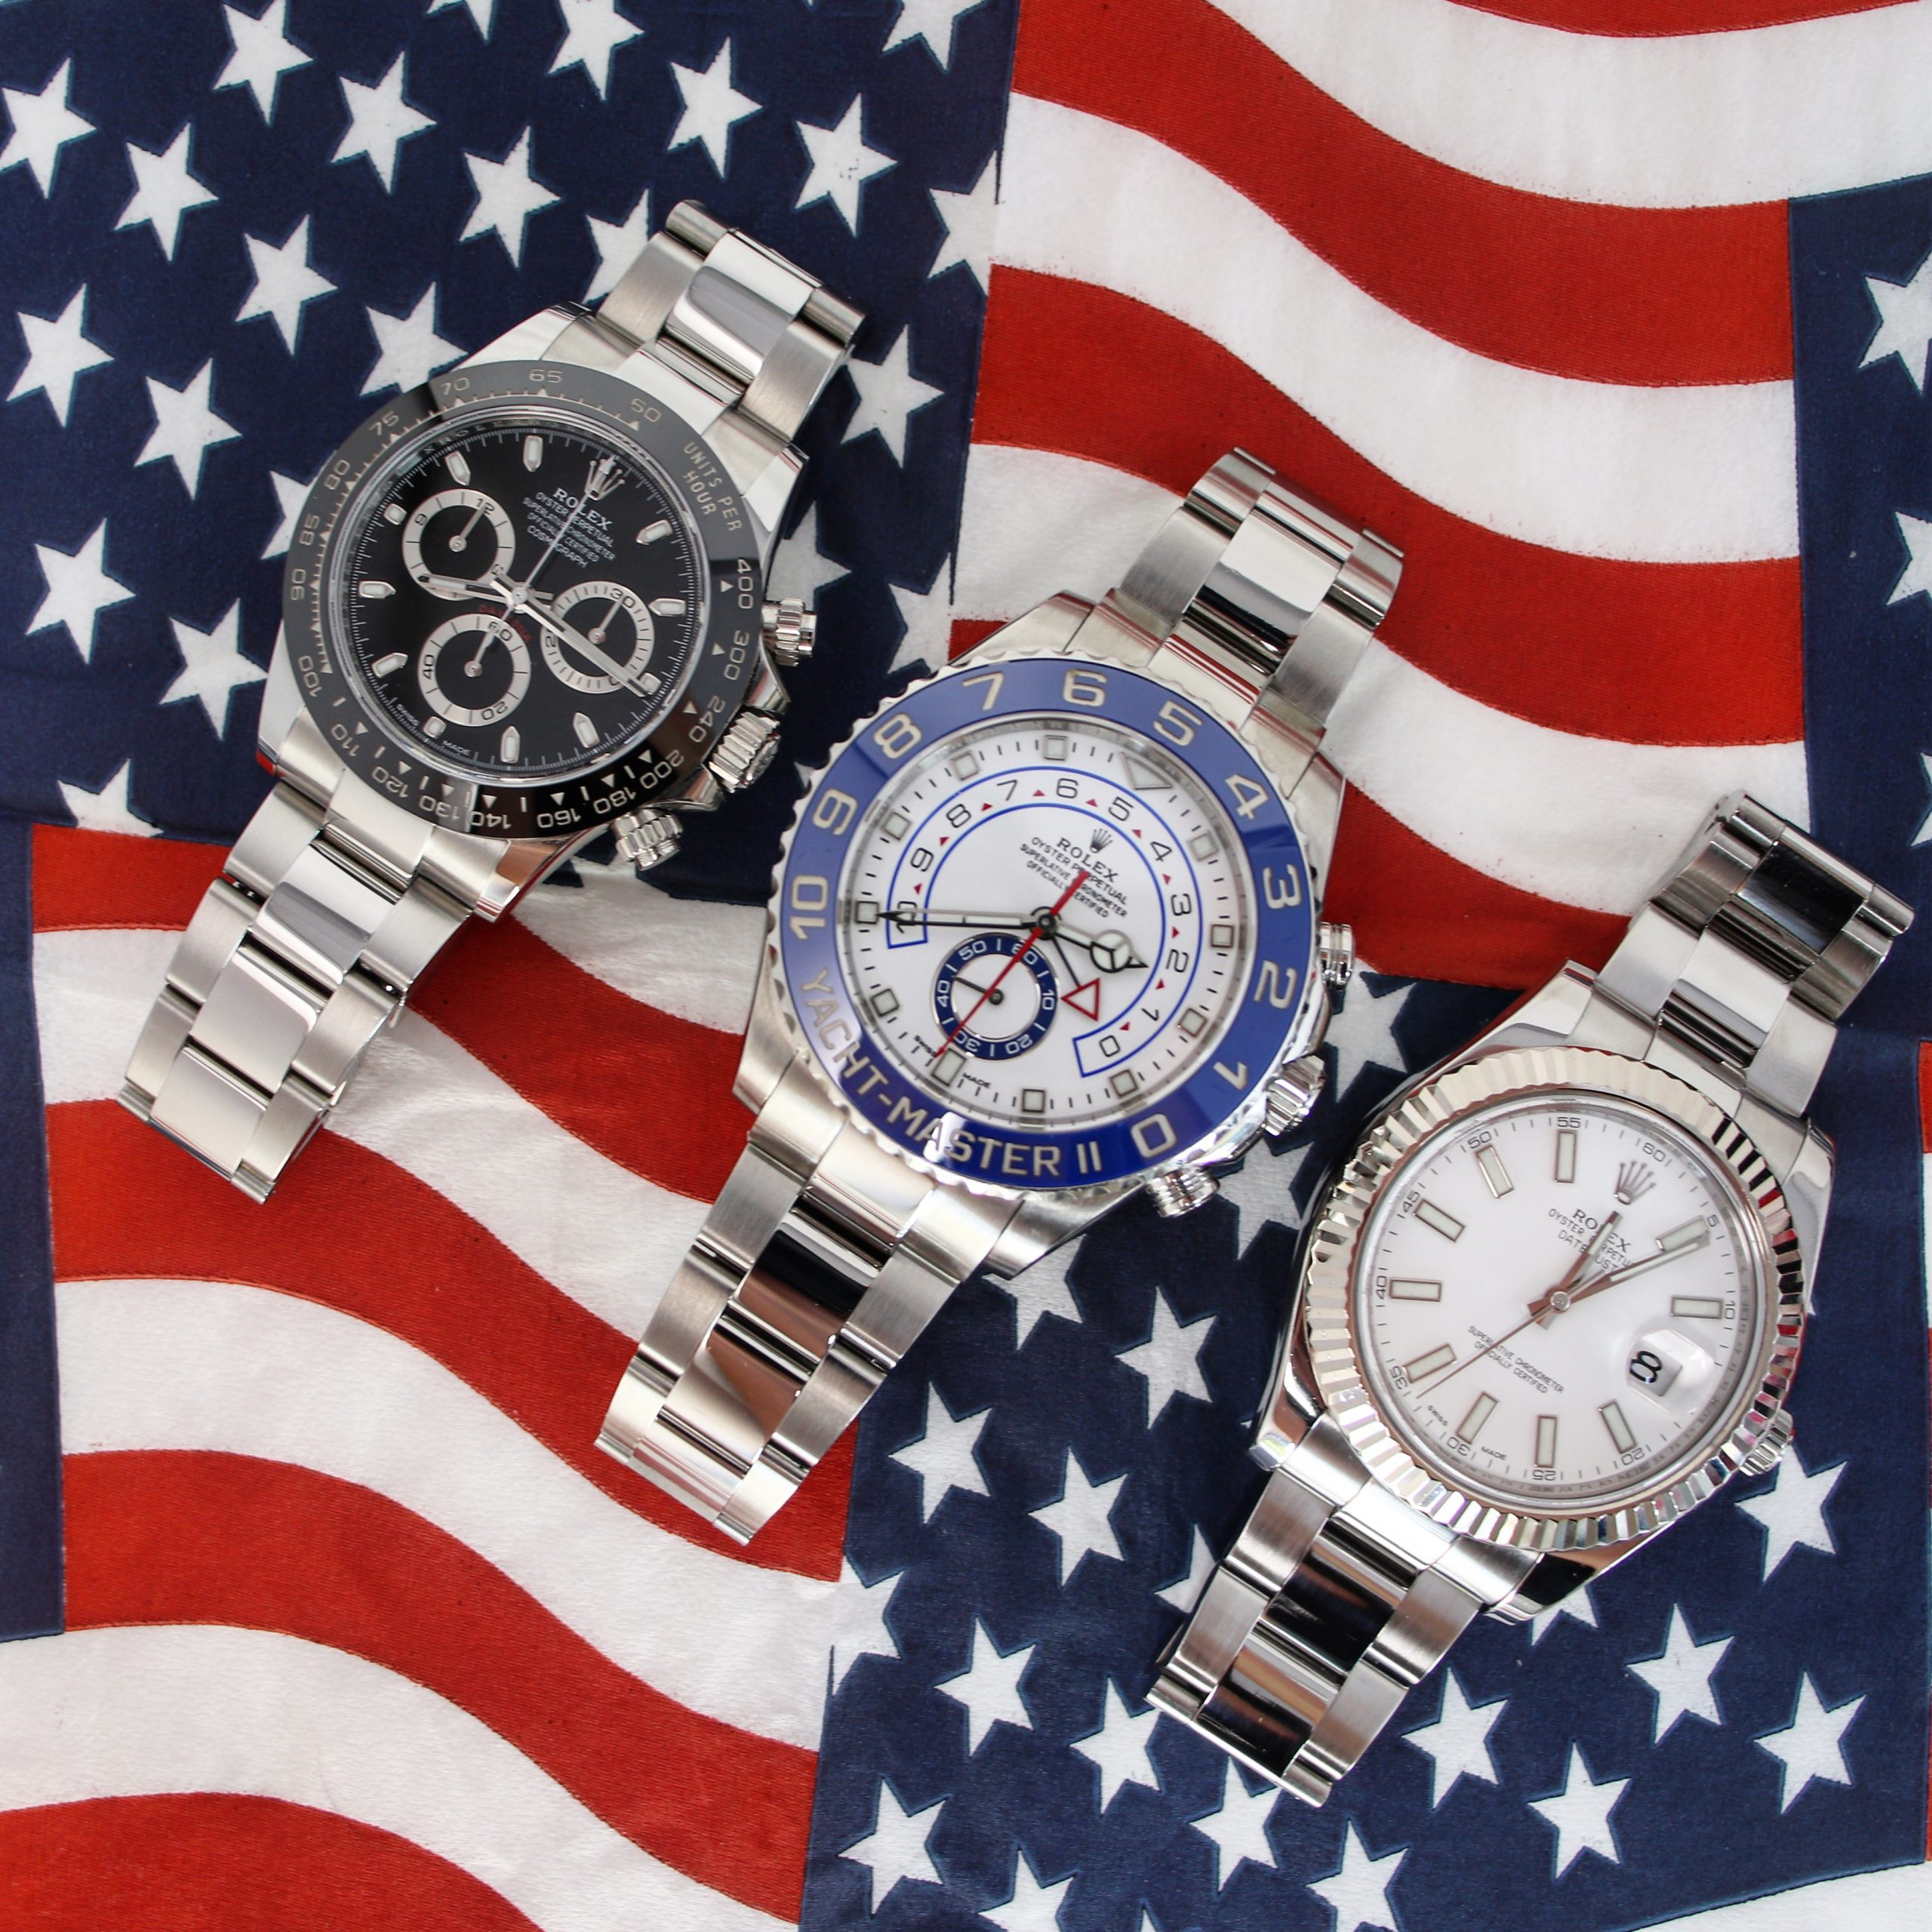 rolex straps options for three pictured watches Yachtmaster II daytona and datejust